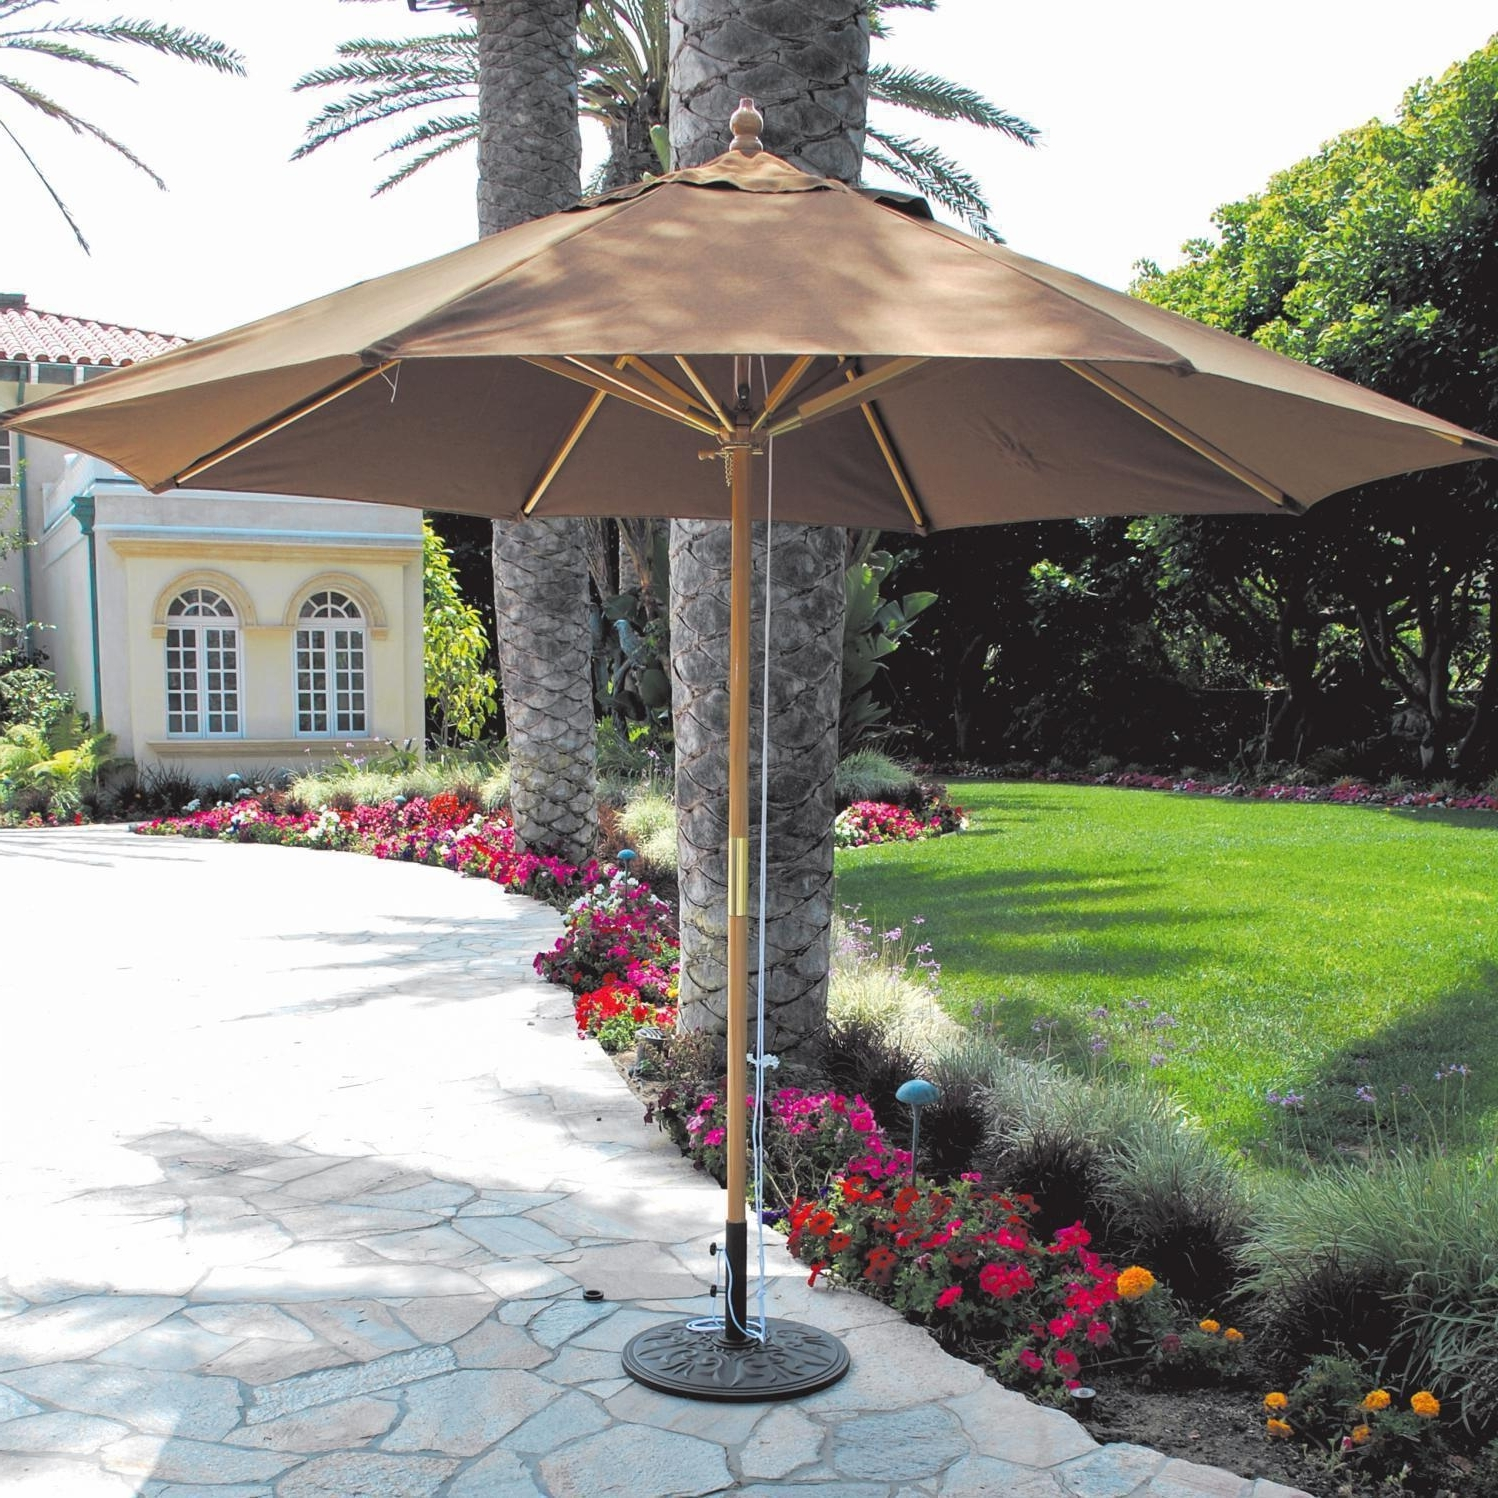 Newest Galtech 11 Ft Wood Patio Umbrella With Pulley Lift – Light Wood Inside 11 Ft Patio Umbrellas (Gallery 7 of 20)